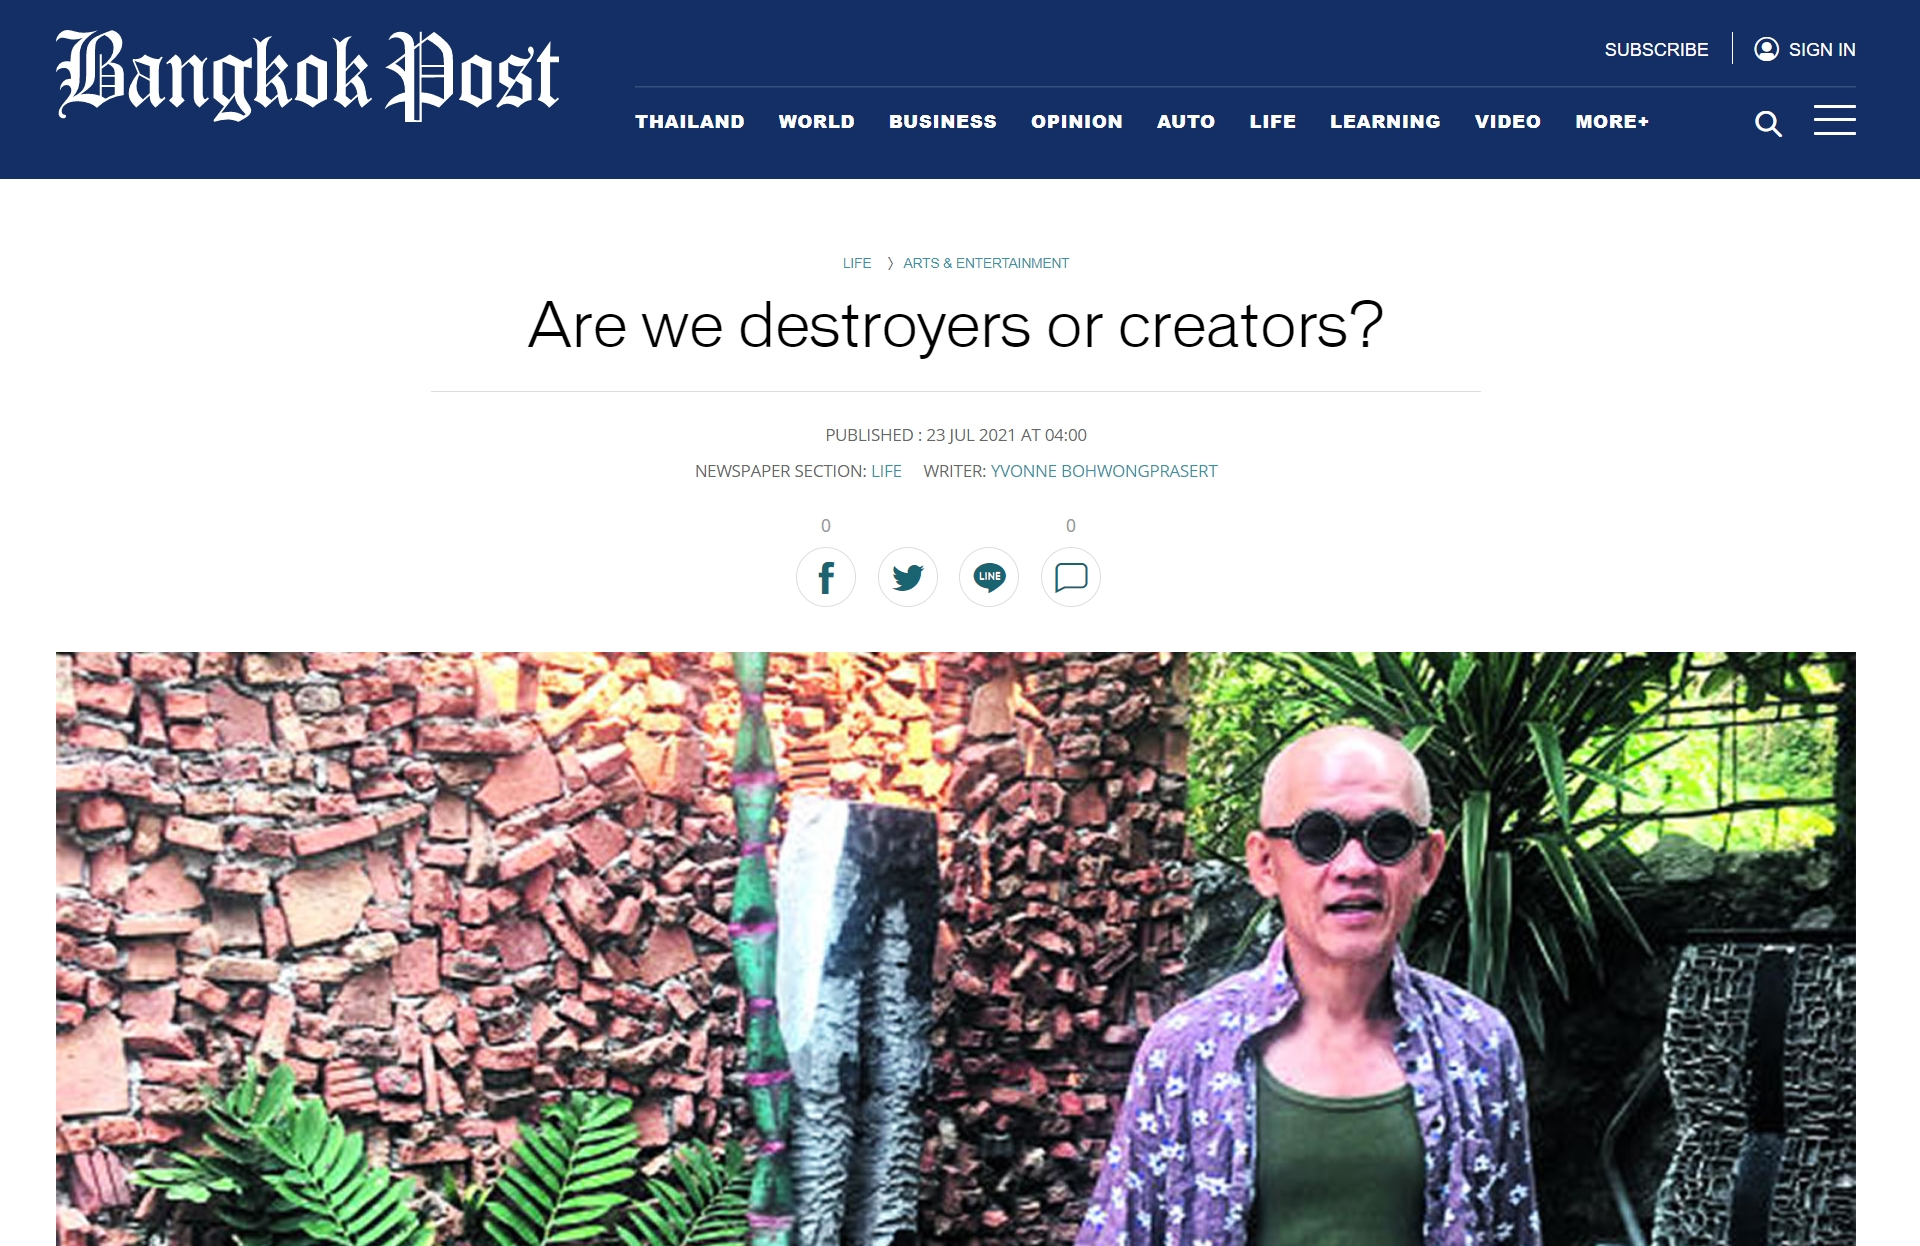 Are we destroyers or creators?